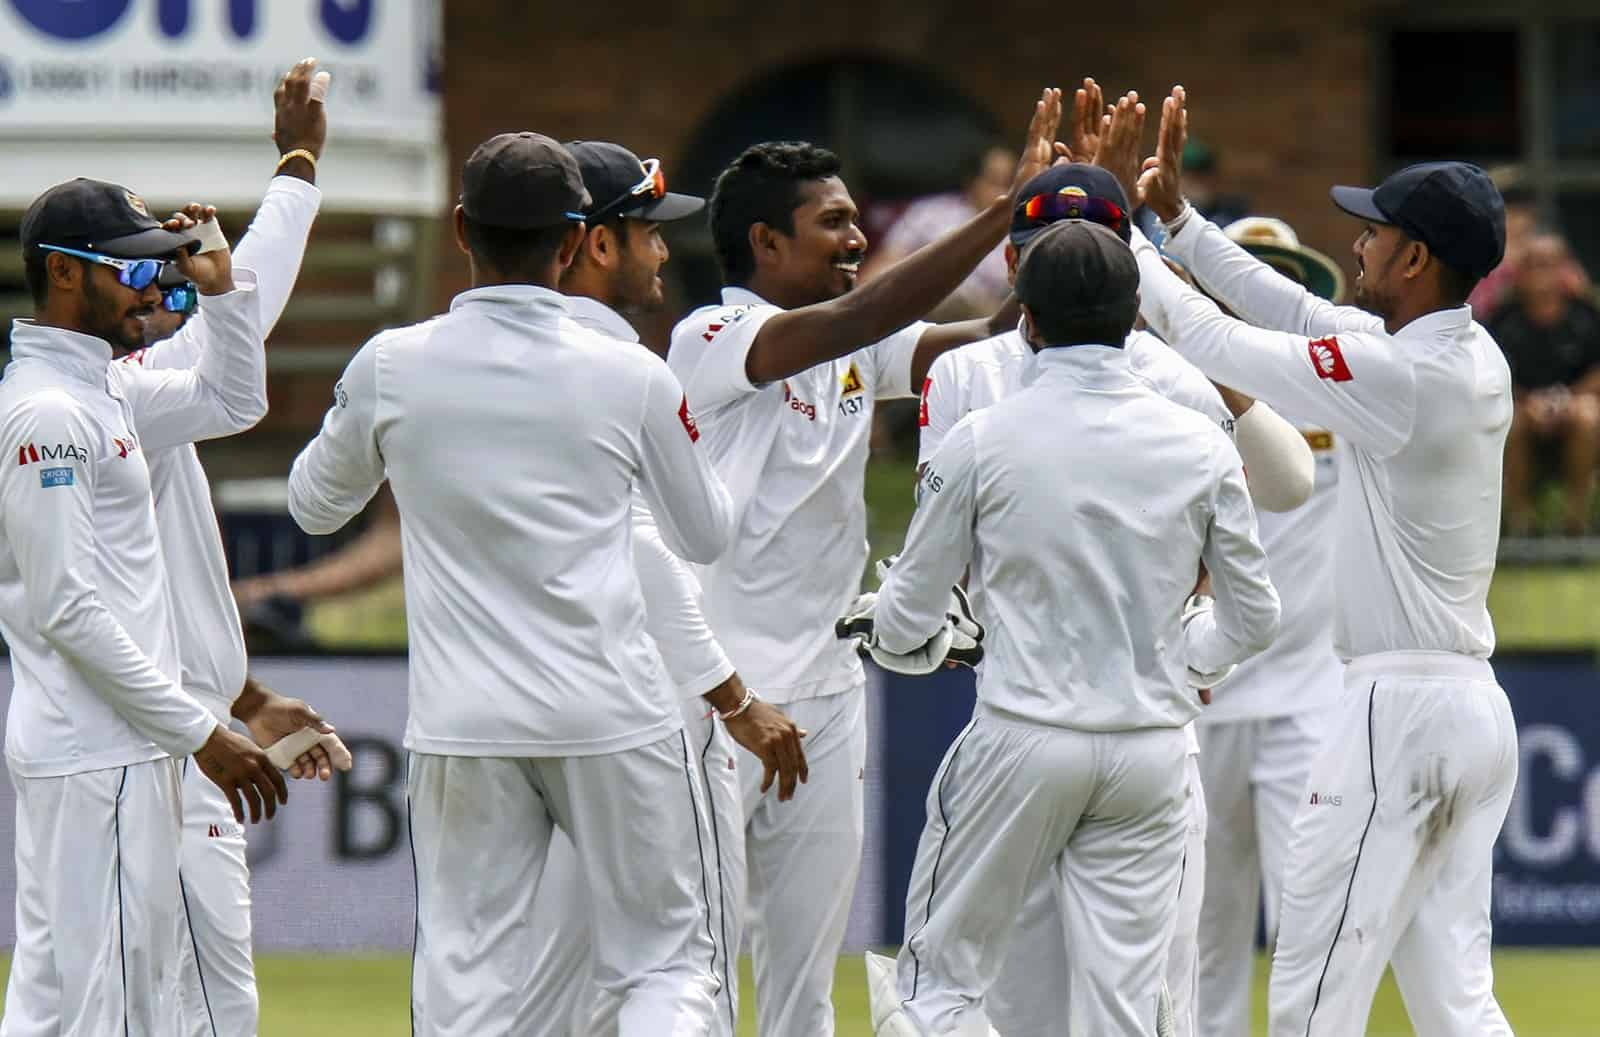 SA vs SL 1st Test Dream11 Fantasy Prediction: Playing 11, Pitch Report, Weather Forecast, Head-to-Head, Match Updates – Sri Lanka Tour of South Africa 2020-21